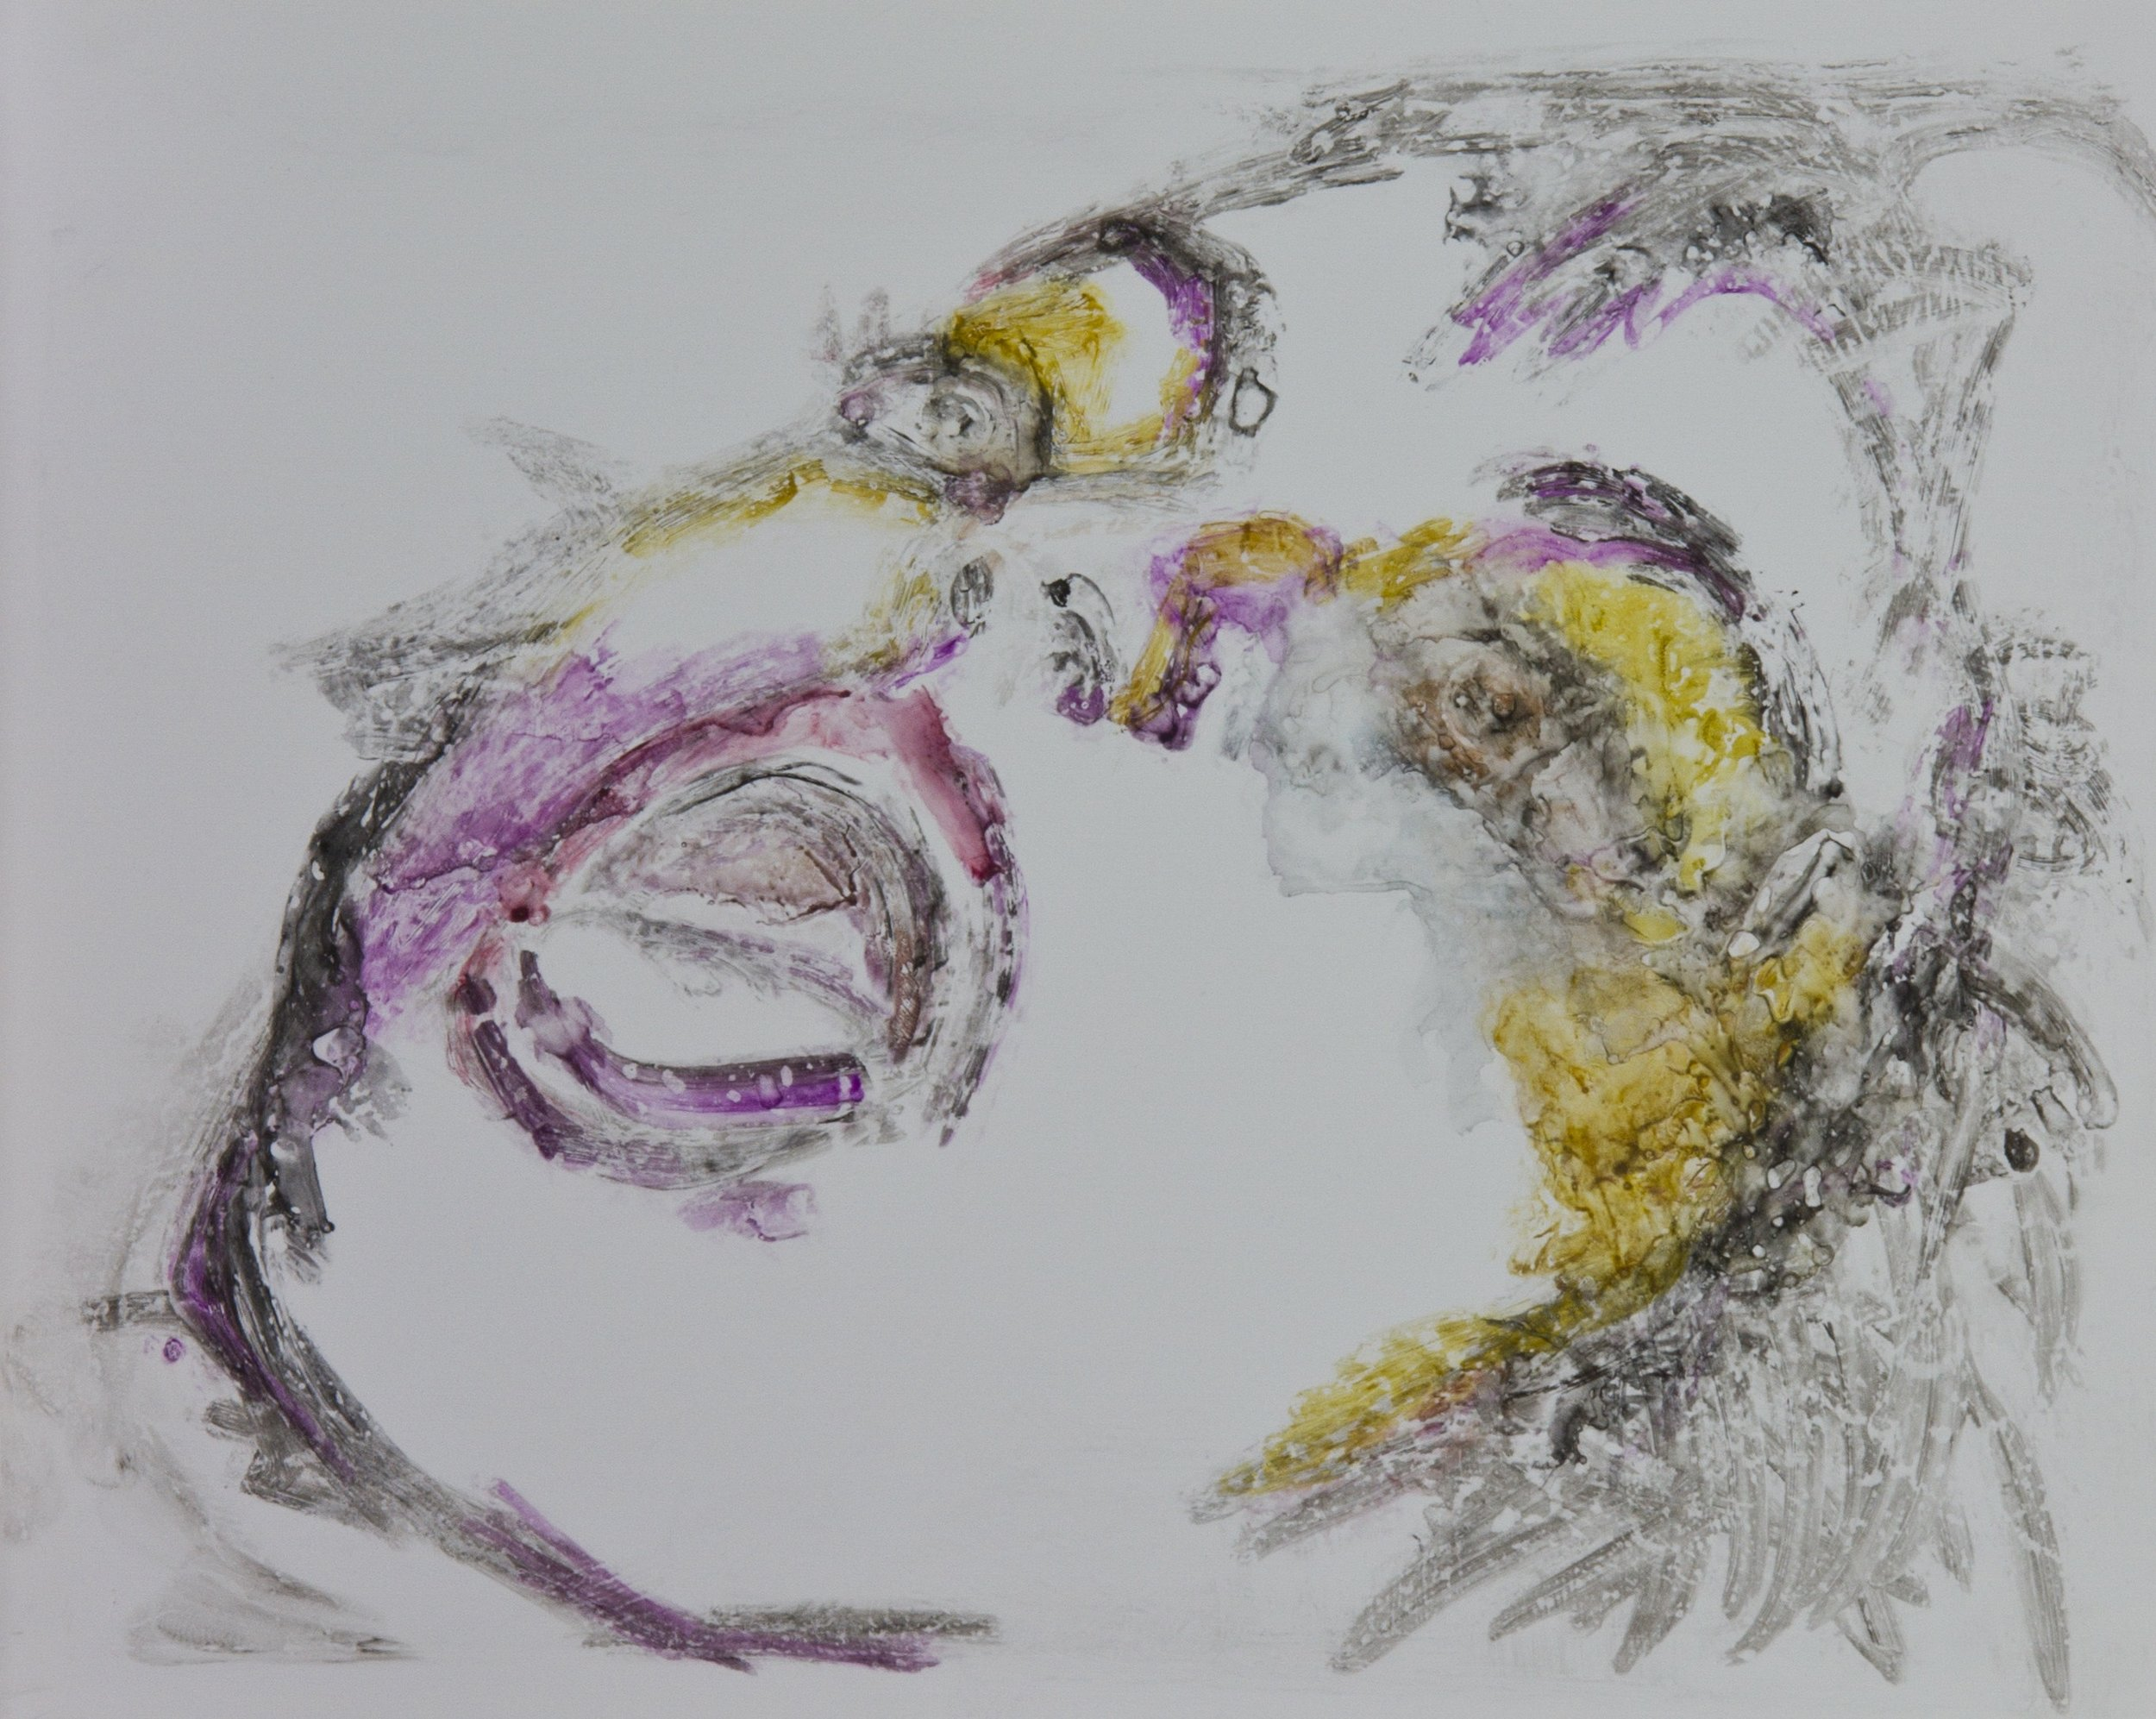 Acts 40, 2010, watercolor monotype on polypropylene, 11x14 inches